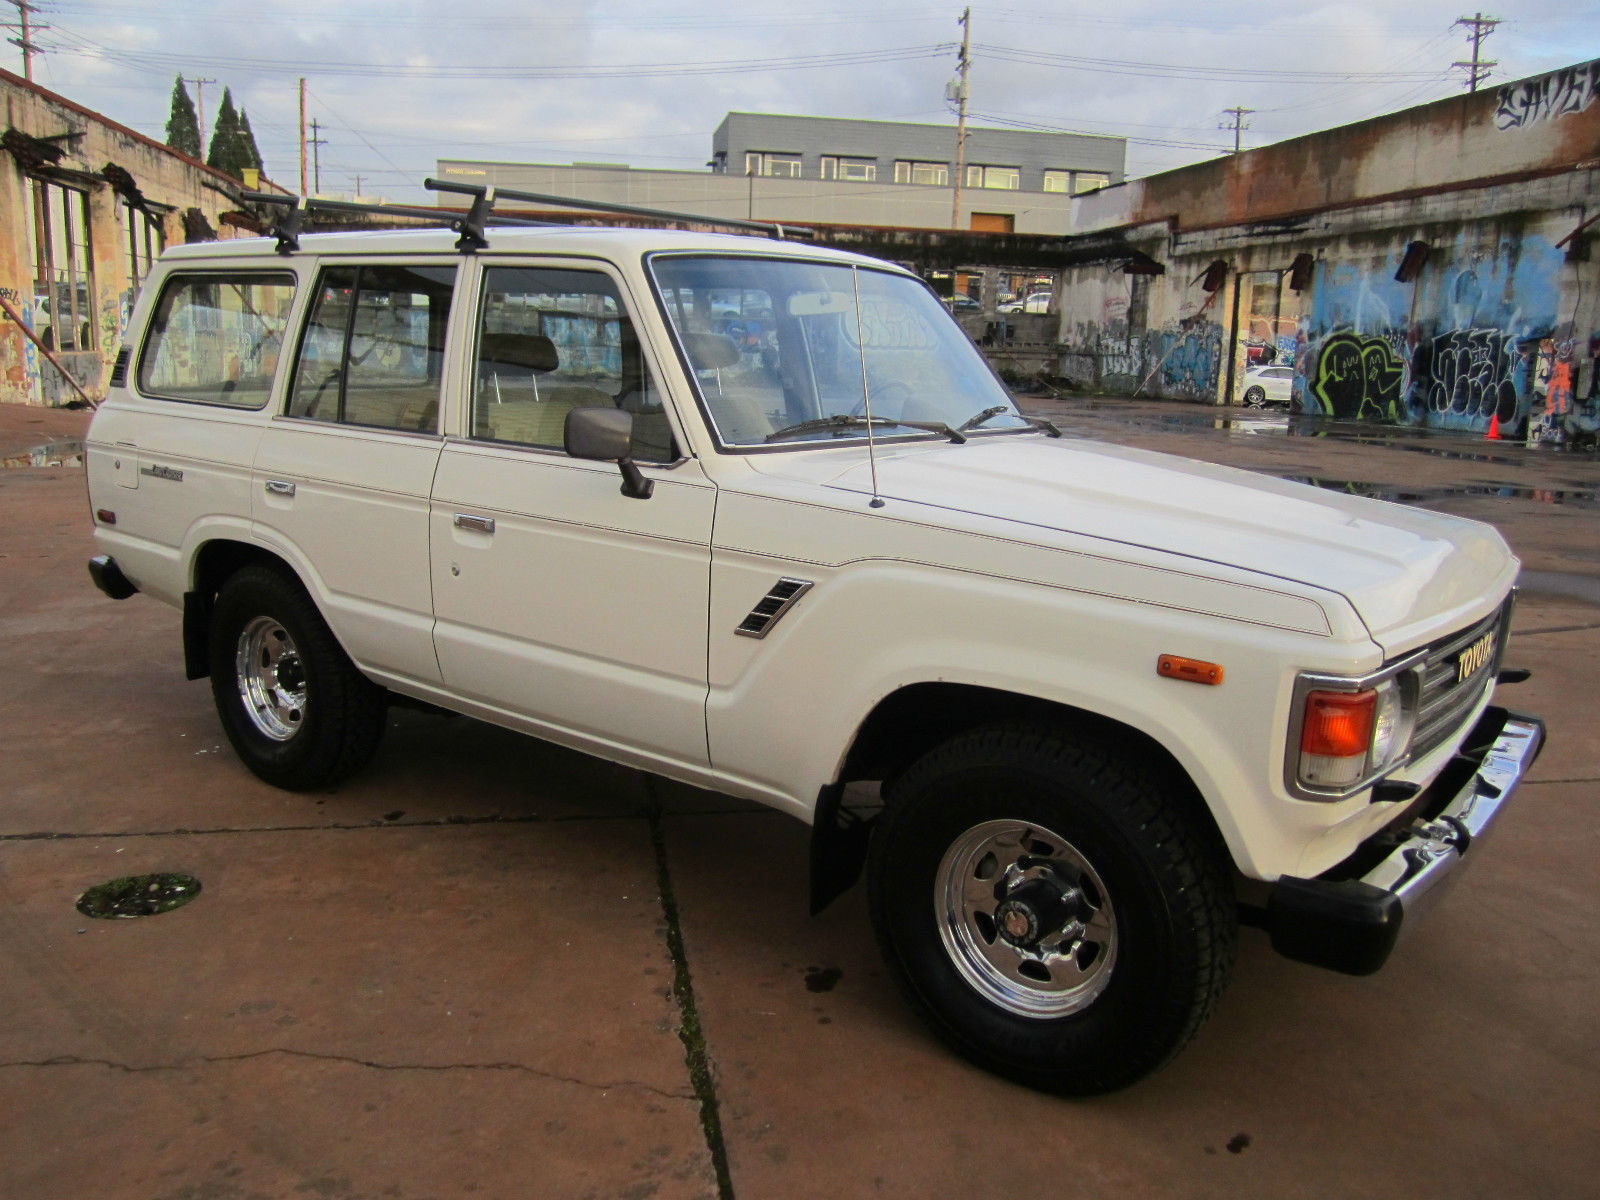 1987 Toyota Land Cruiser Fj60 Extremely Clean And Original No Rust Prevnext